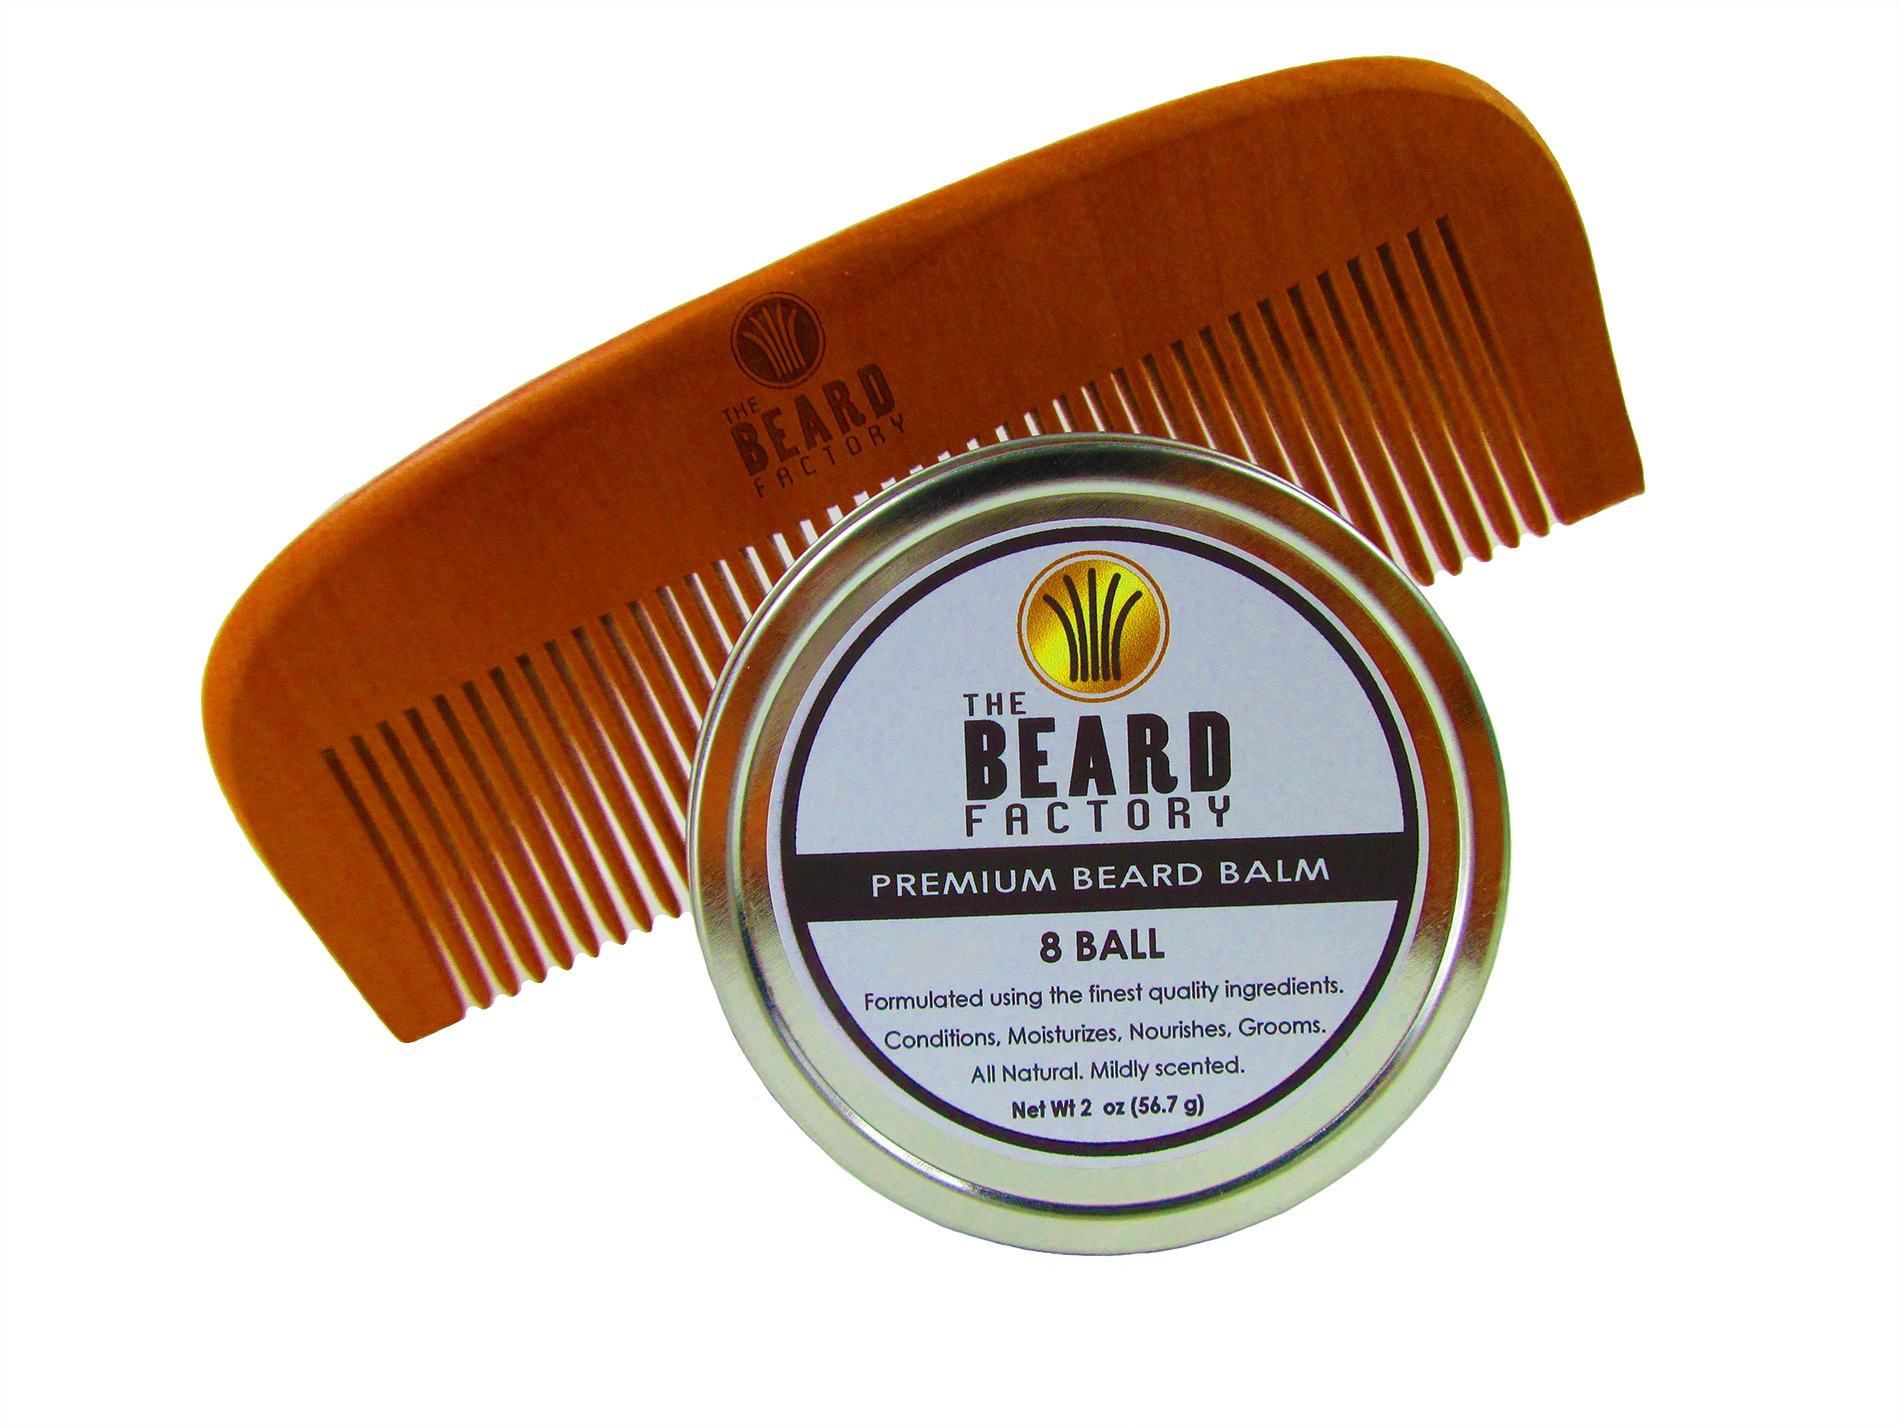 8 ball balm and comb